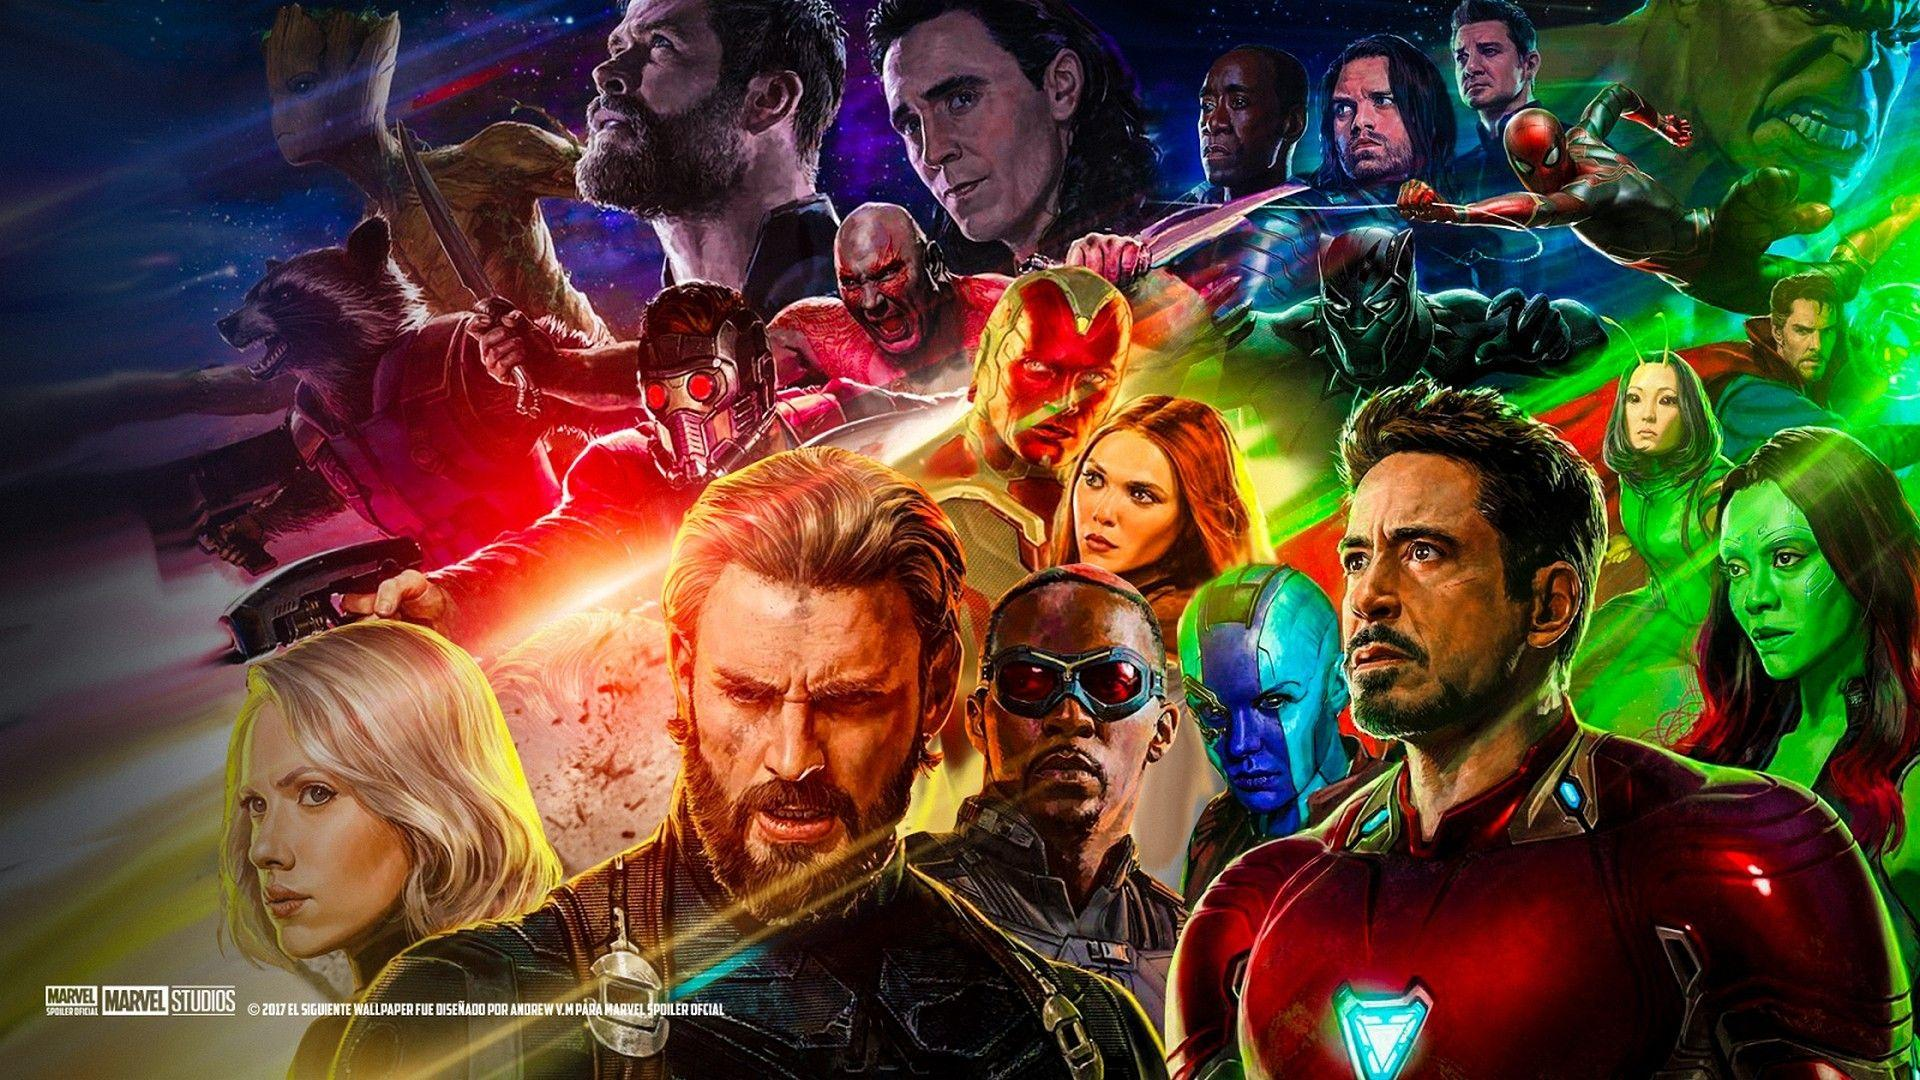 Avengers Infinity War Hd Wallpapers Wallpaper Cave